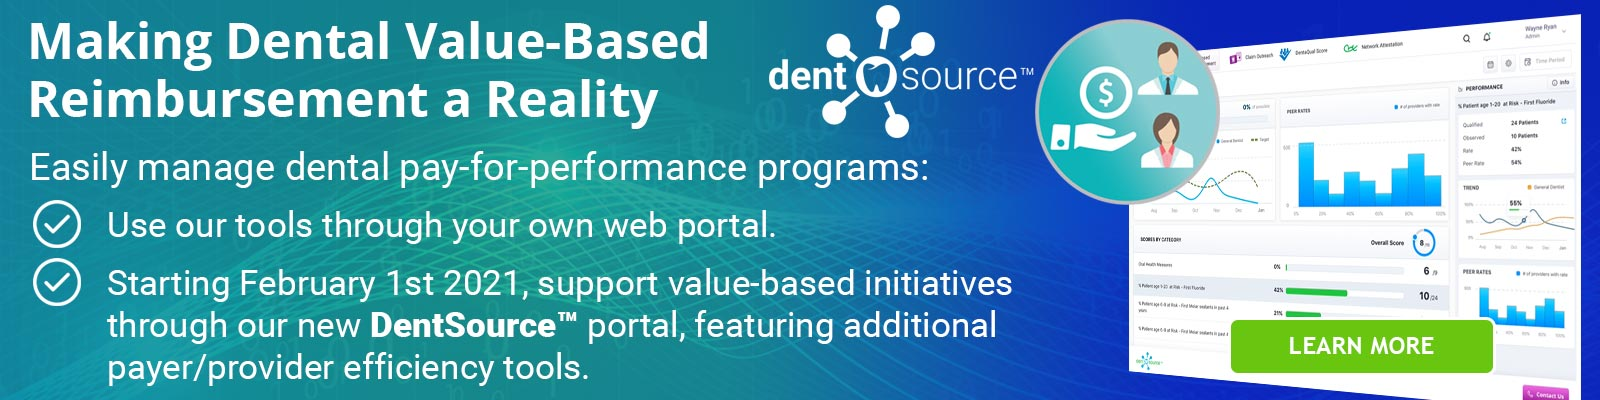 Making dental value-bBased reimbursement a reality: Easily manage dental pay-for-performance programs.